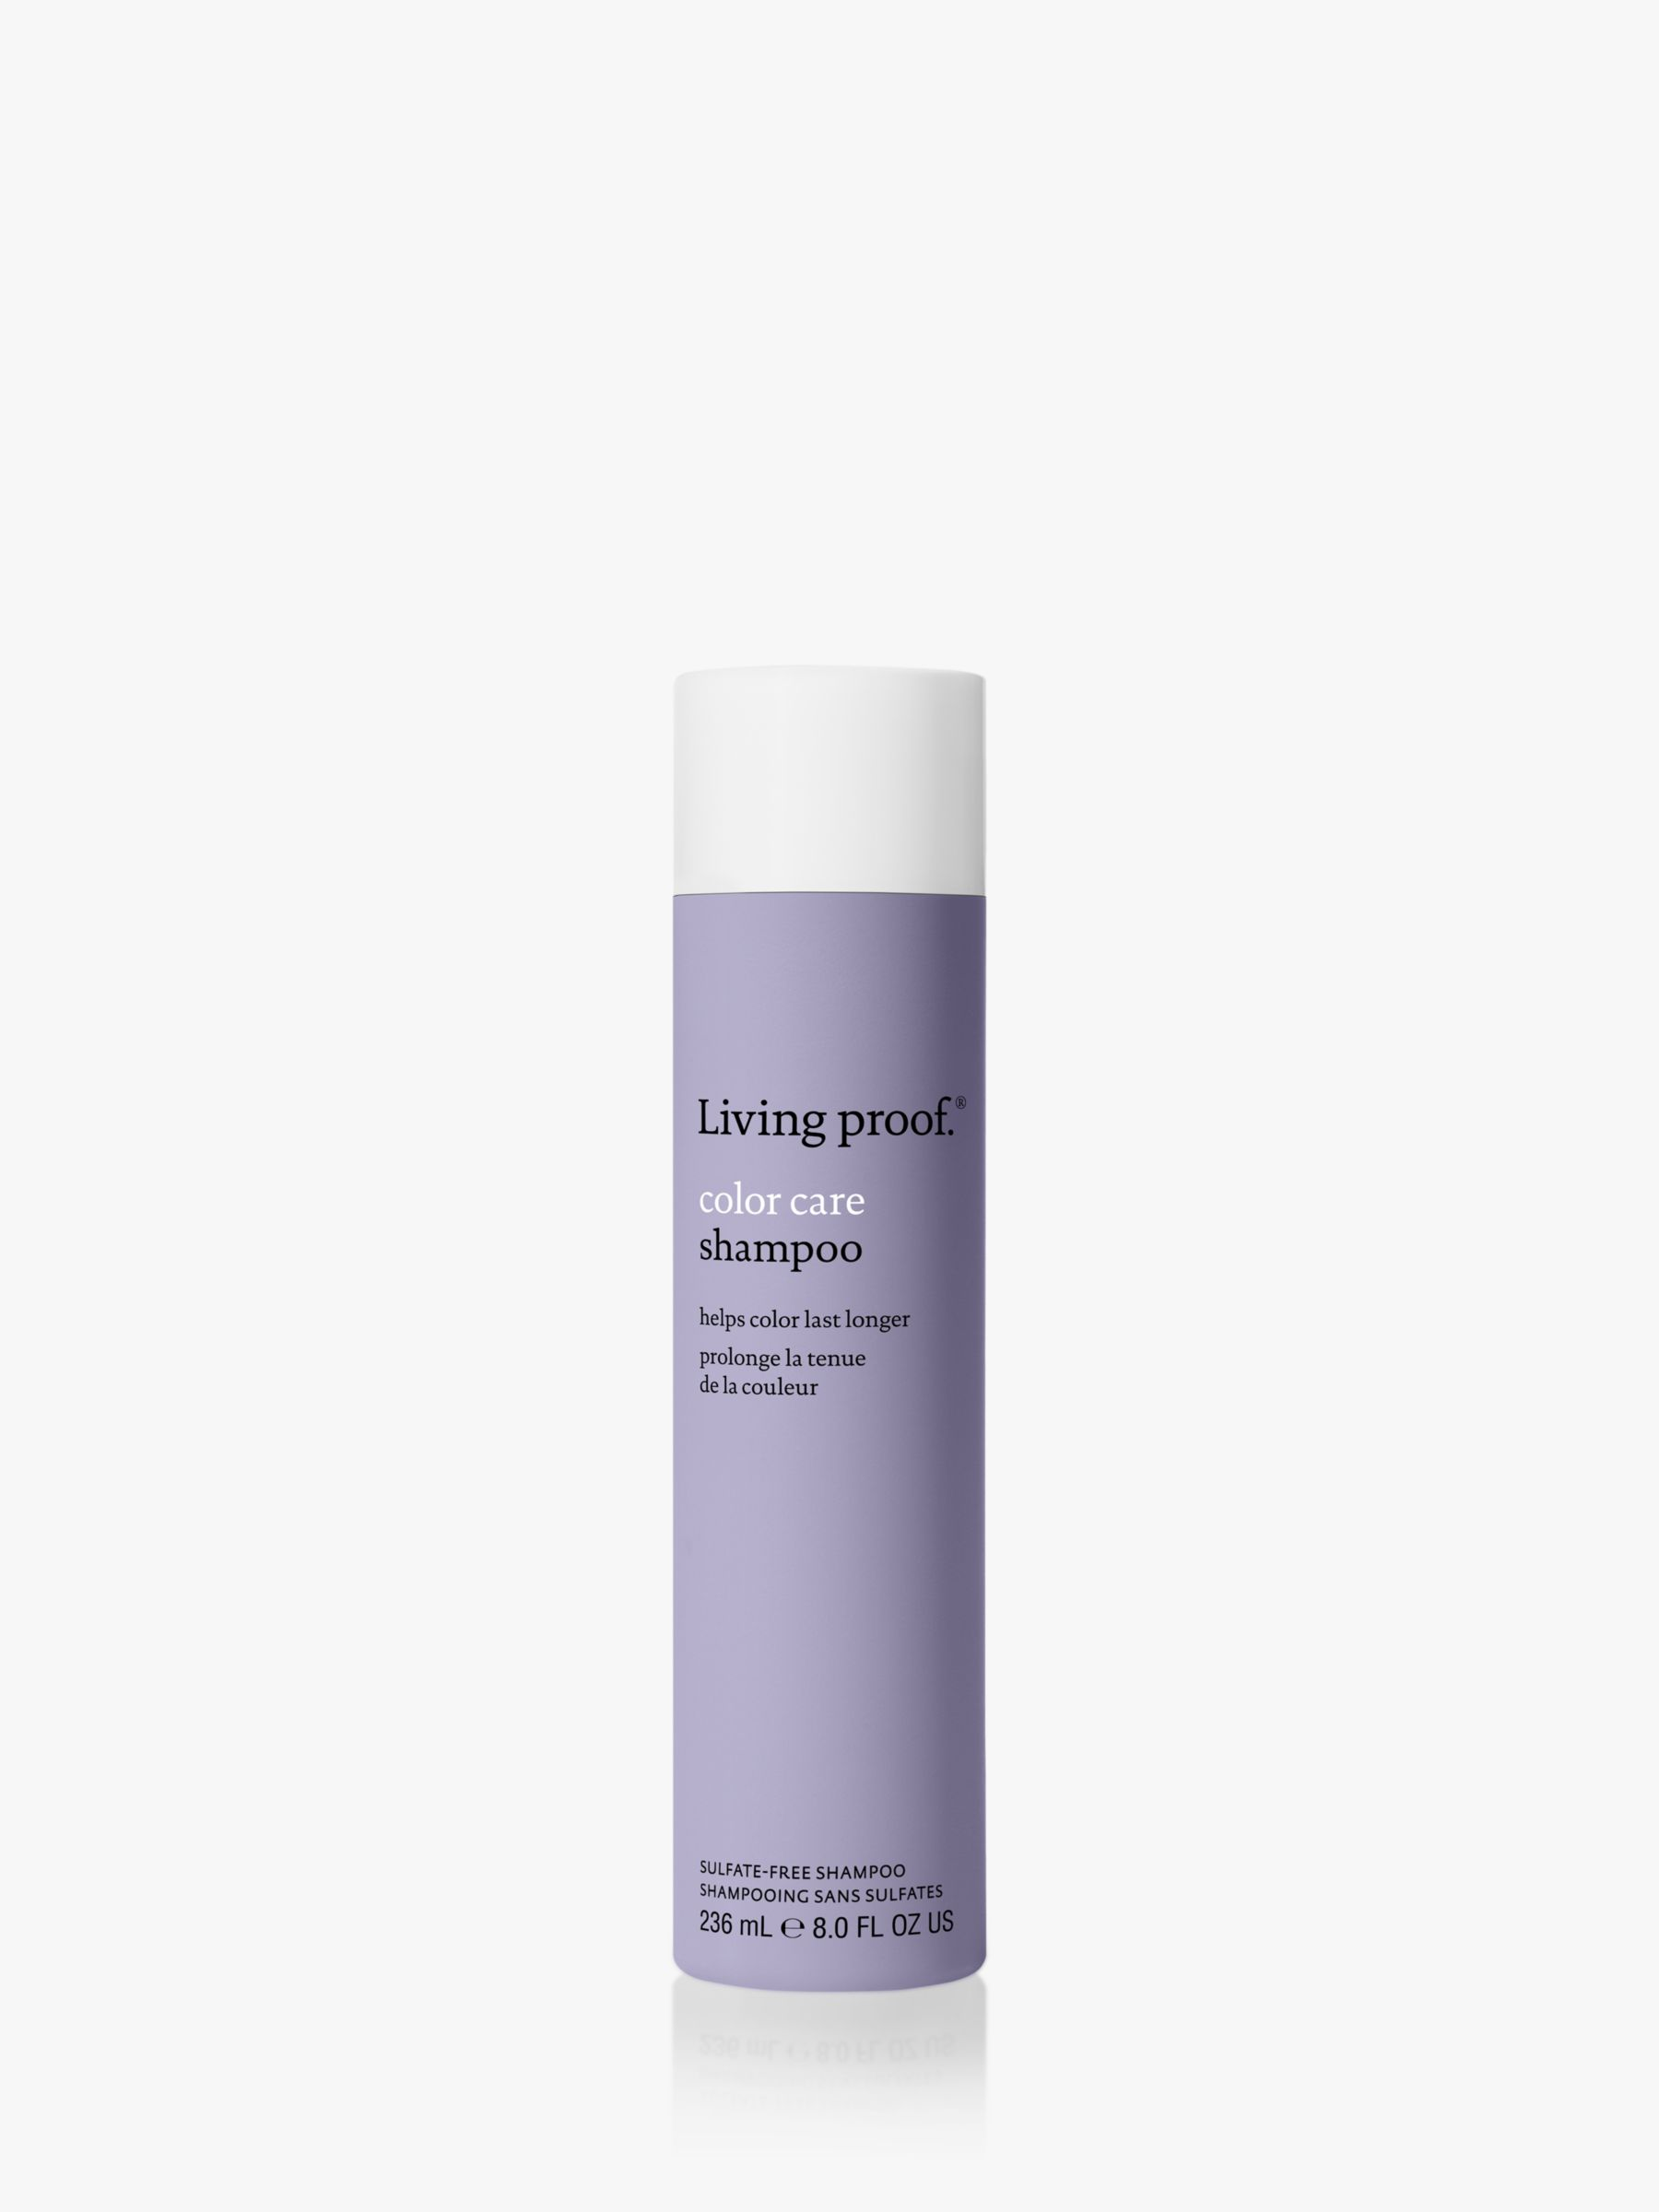 Living Proof Living Proof Color Care Shampoo, 236ml